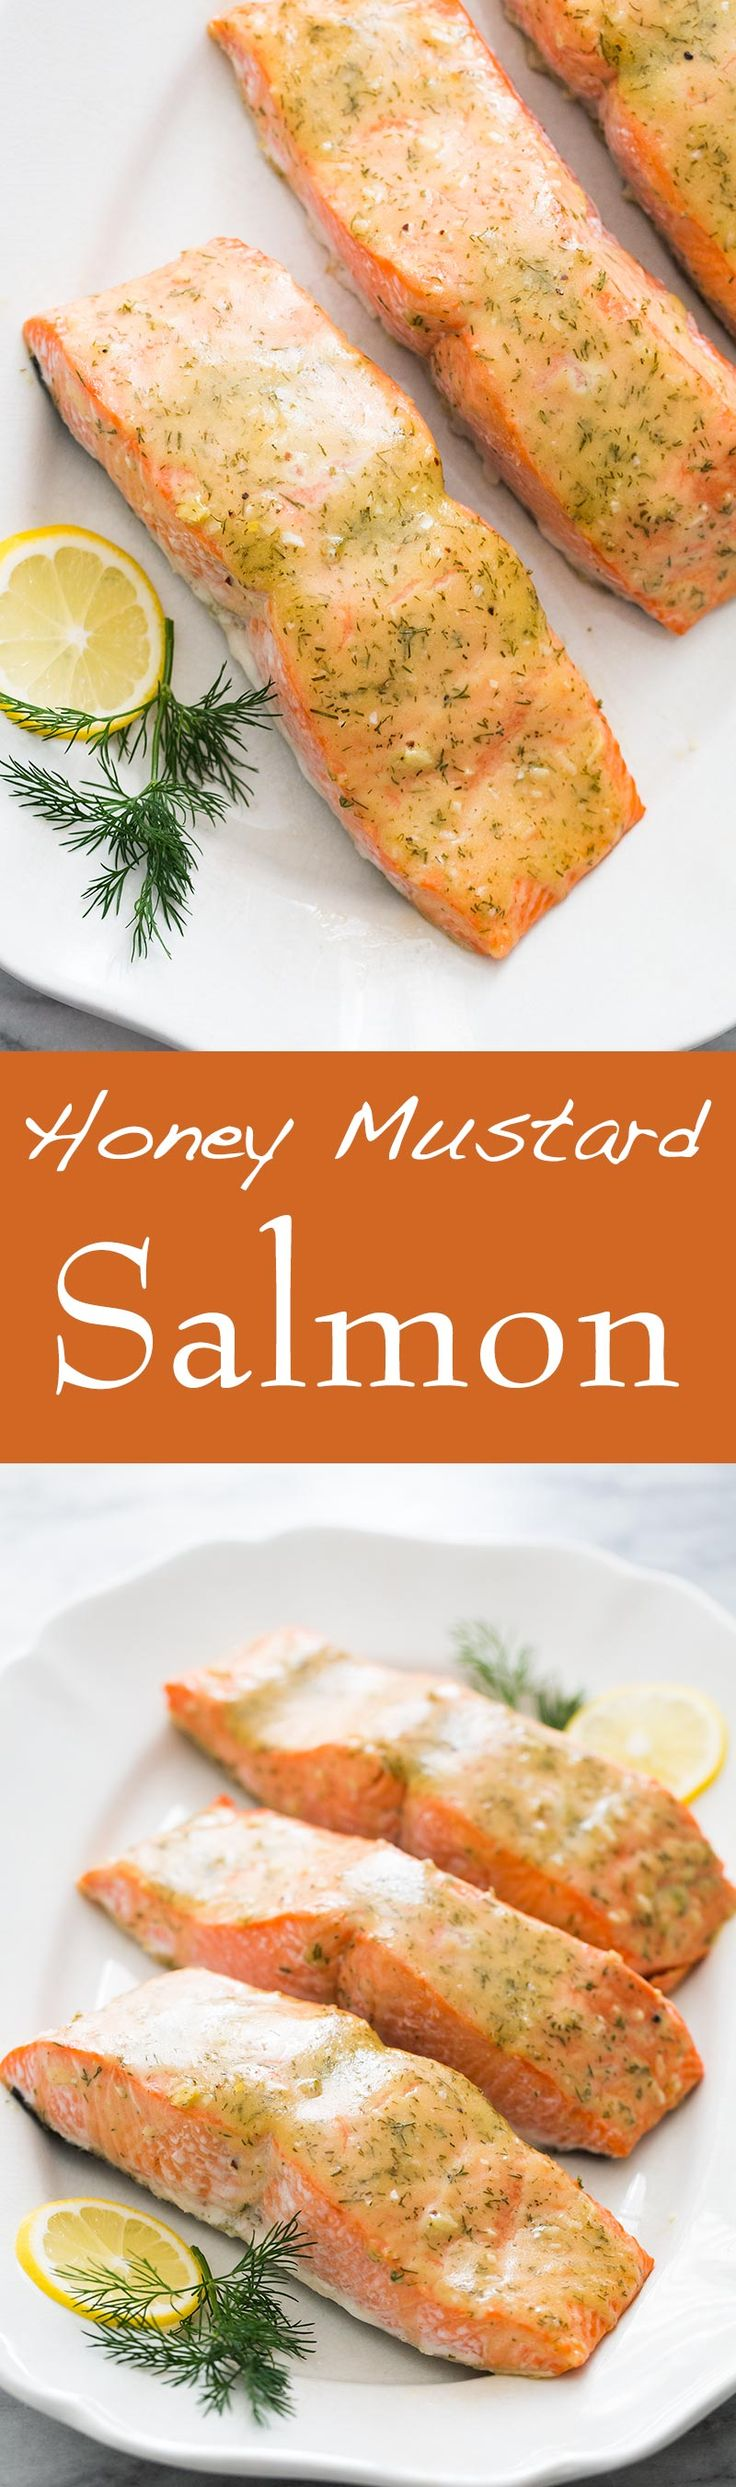 Honey Mustard Salmon, Such A Quick, Easy, Delicious Way To Dress Up Salmon